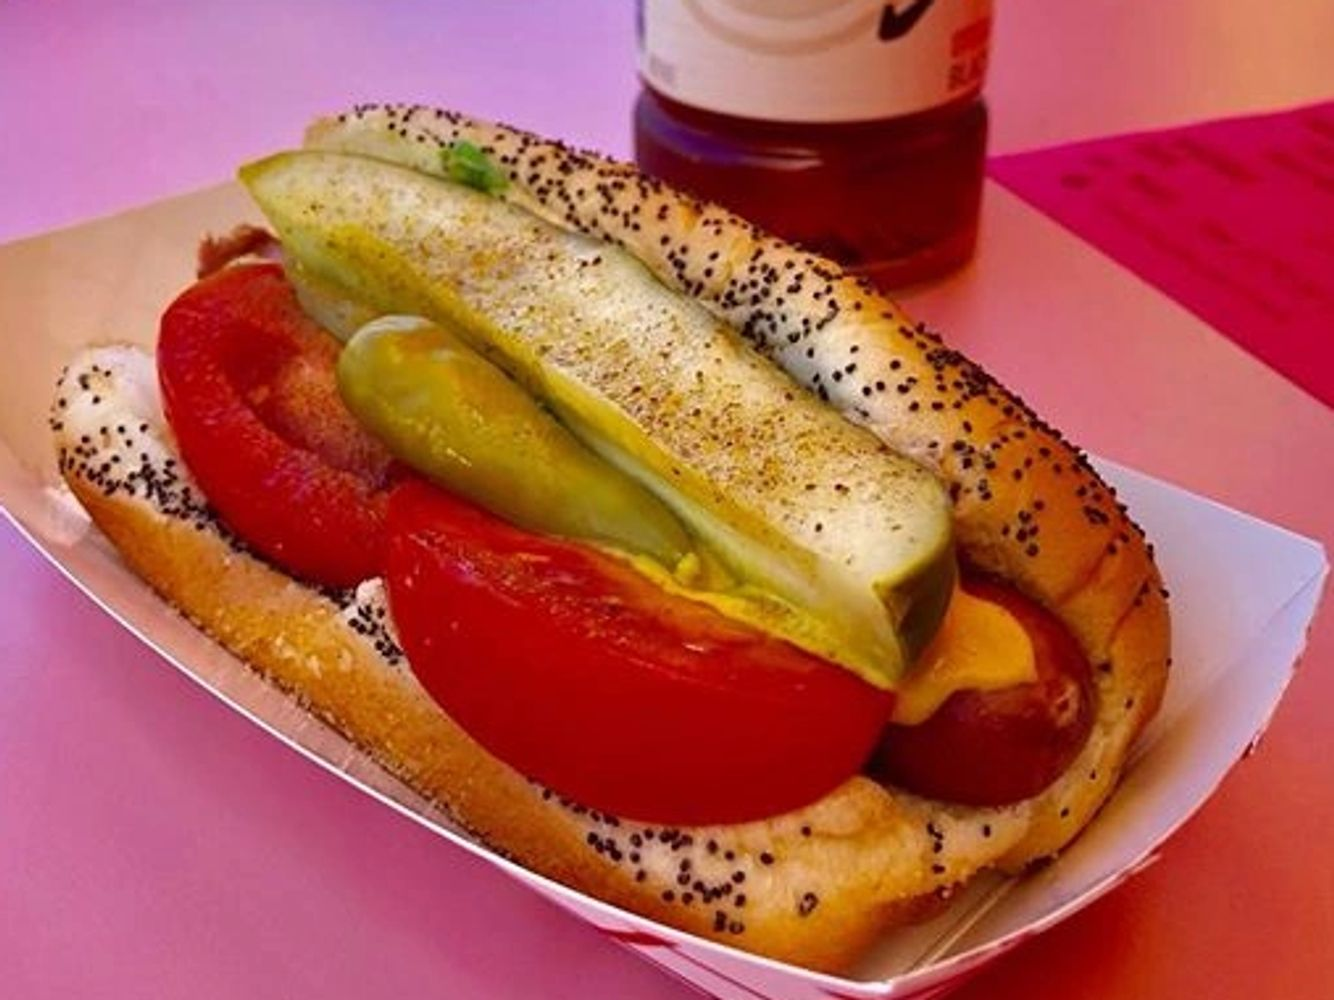 Authentic Chicago Dog made with Vienna Beef or your choice of dogs. Yellow mustard, atomic relish, d